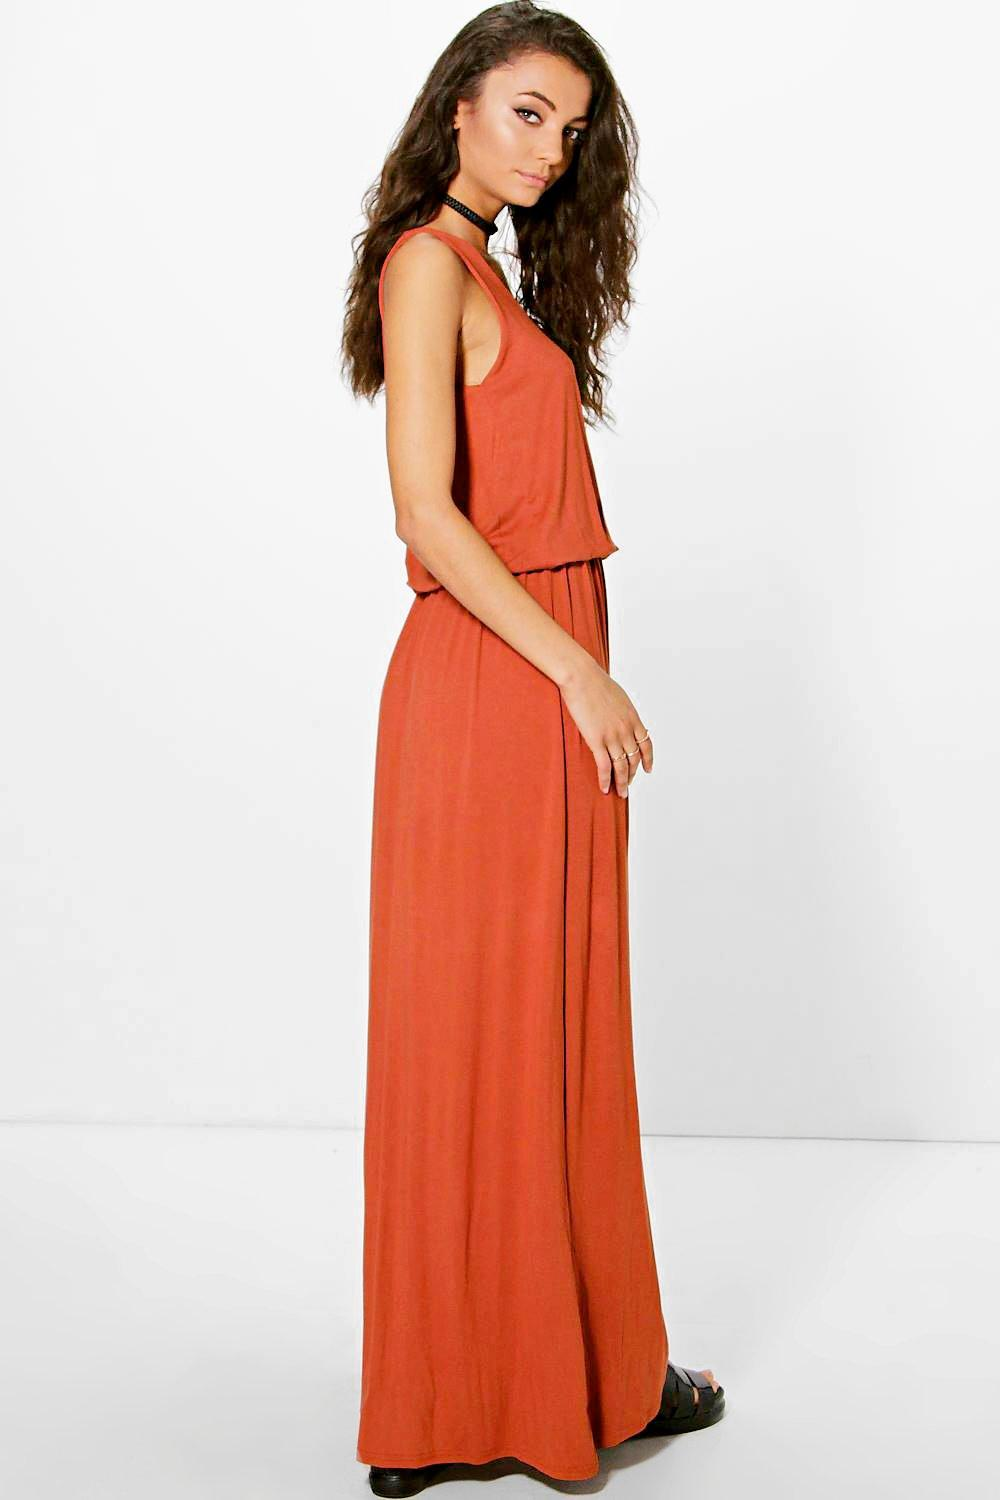 Shop from the world's largest selection and best deals for Tall Size Maxi Dresses for Women. Shop with confidence on eBay! Skip to main content. eBay: Women's Tall Size Med Maxi Dress Brown Green White. $ +$ shipping. Make Offer. coral maxi dress Beach Victorias Secret Backless. $ 3d 5h +$ shipping.